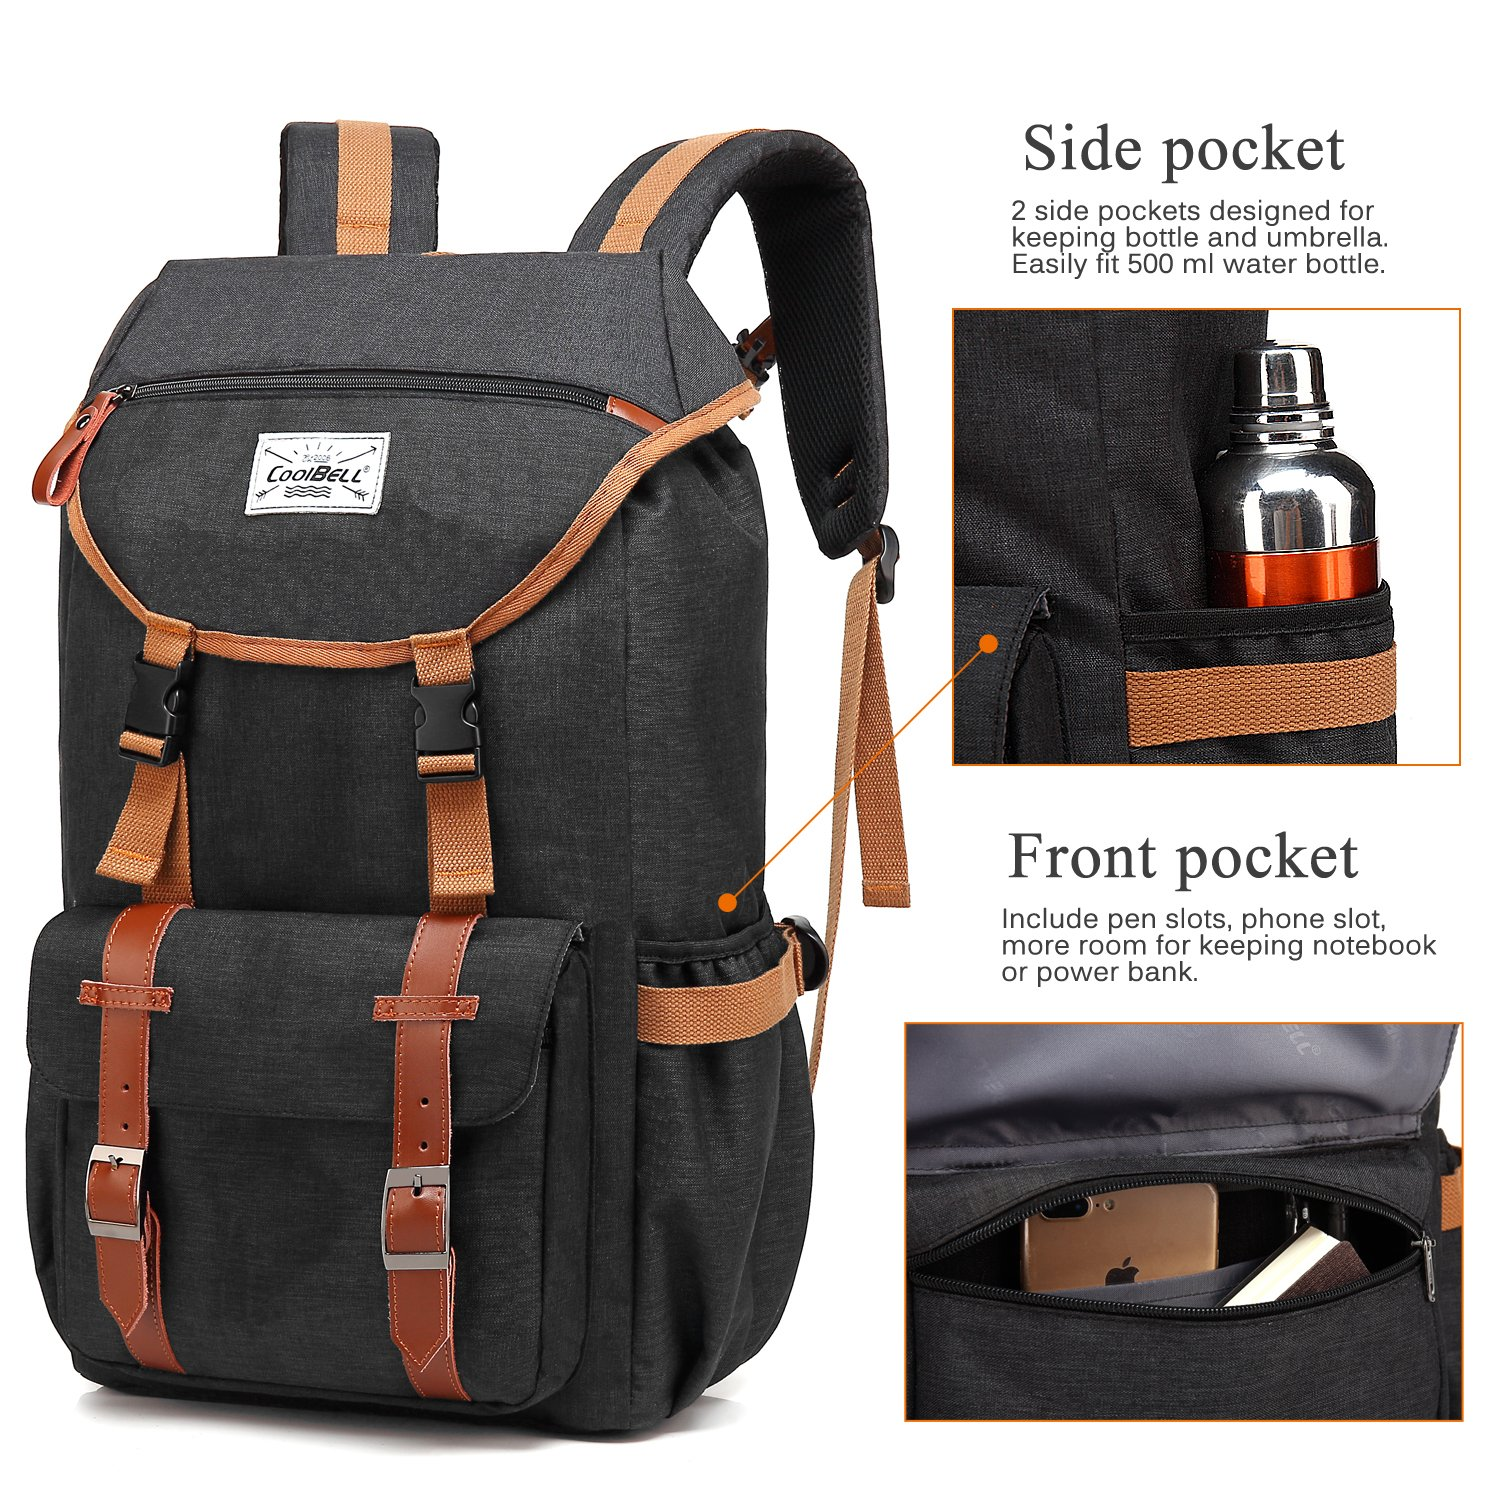 Travel Backpack CoolBELL 17.3 Inches Laptop Backpack Leisure Outdoor Rucksack Hiking Knapsack School Daypack Multi-functional Business Bag For School/College/Men/Women (38L, Black) by CoolBELL (Image #3)